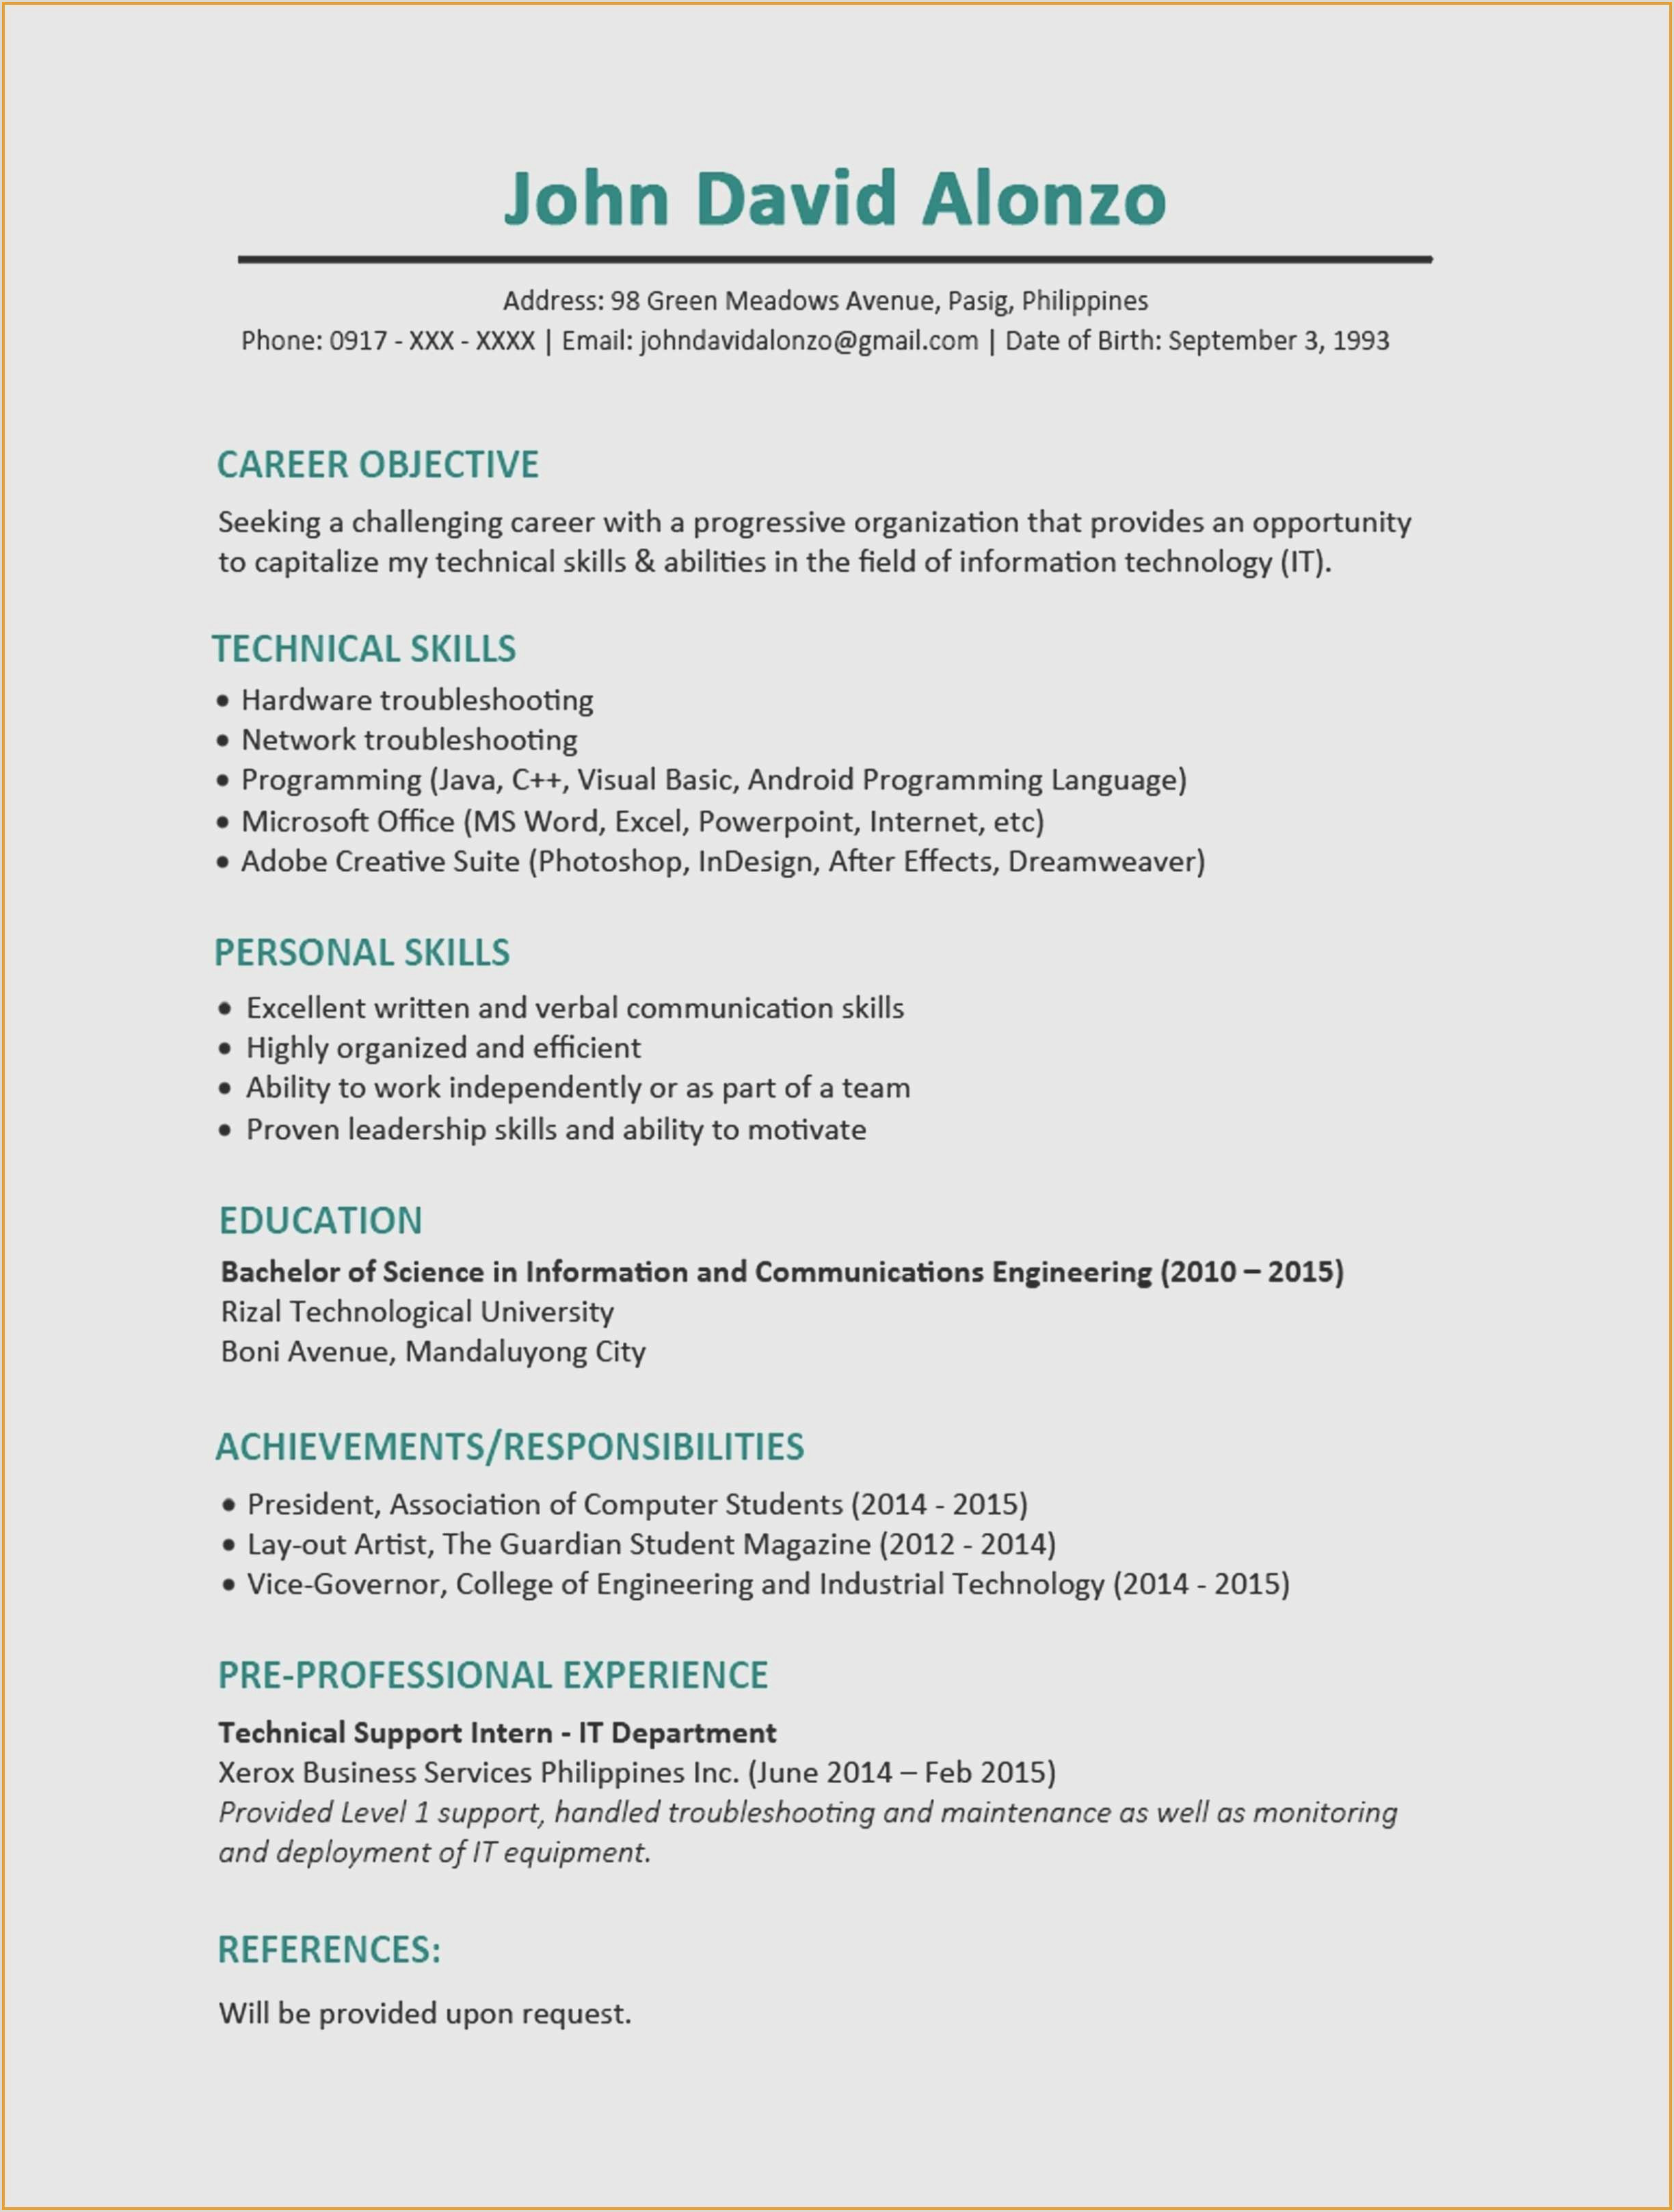 Career Objective for Computer Engineer Opportunity Statement Template Fresh Resume Objective